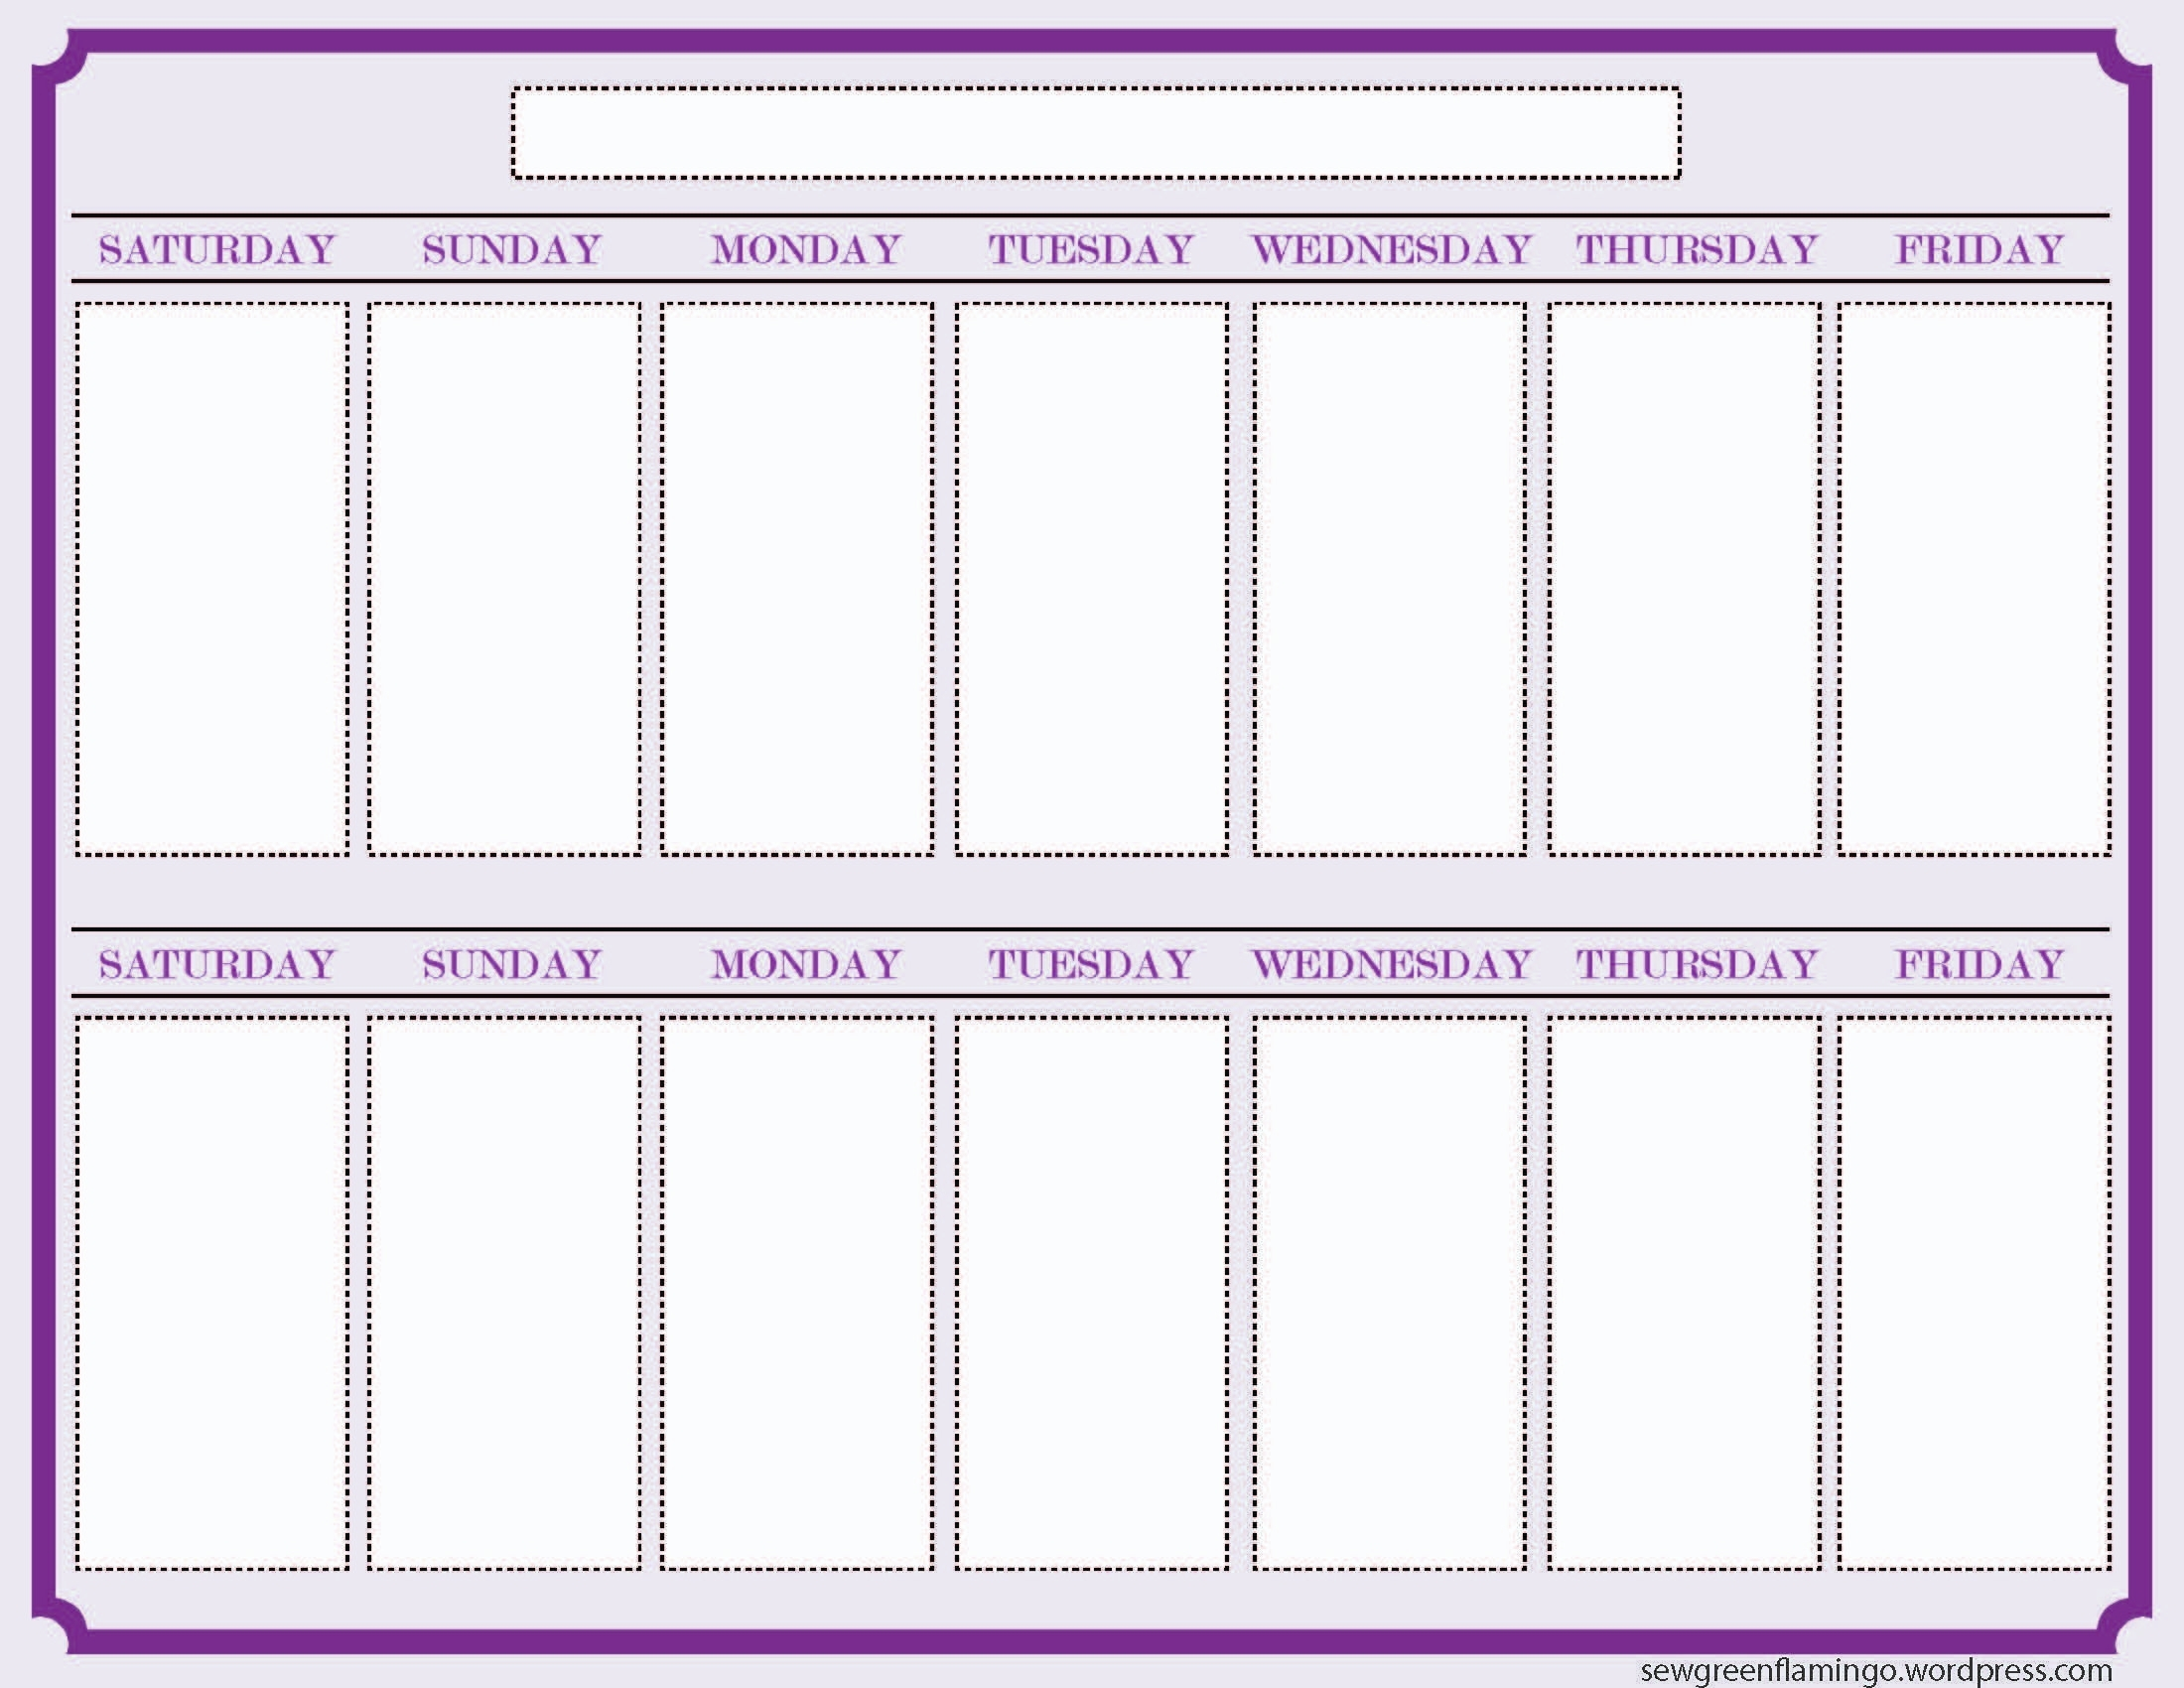 Getting Organized! 2-Week Planner | This Week pertaining to 2 Week Calendar Printable Free